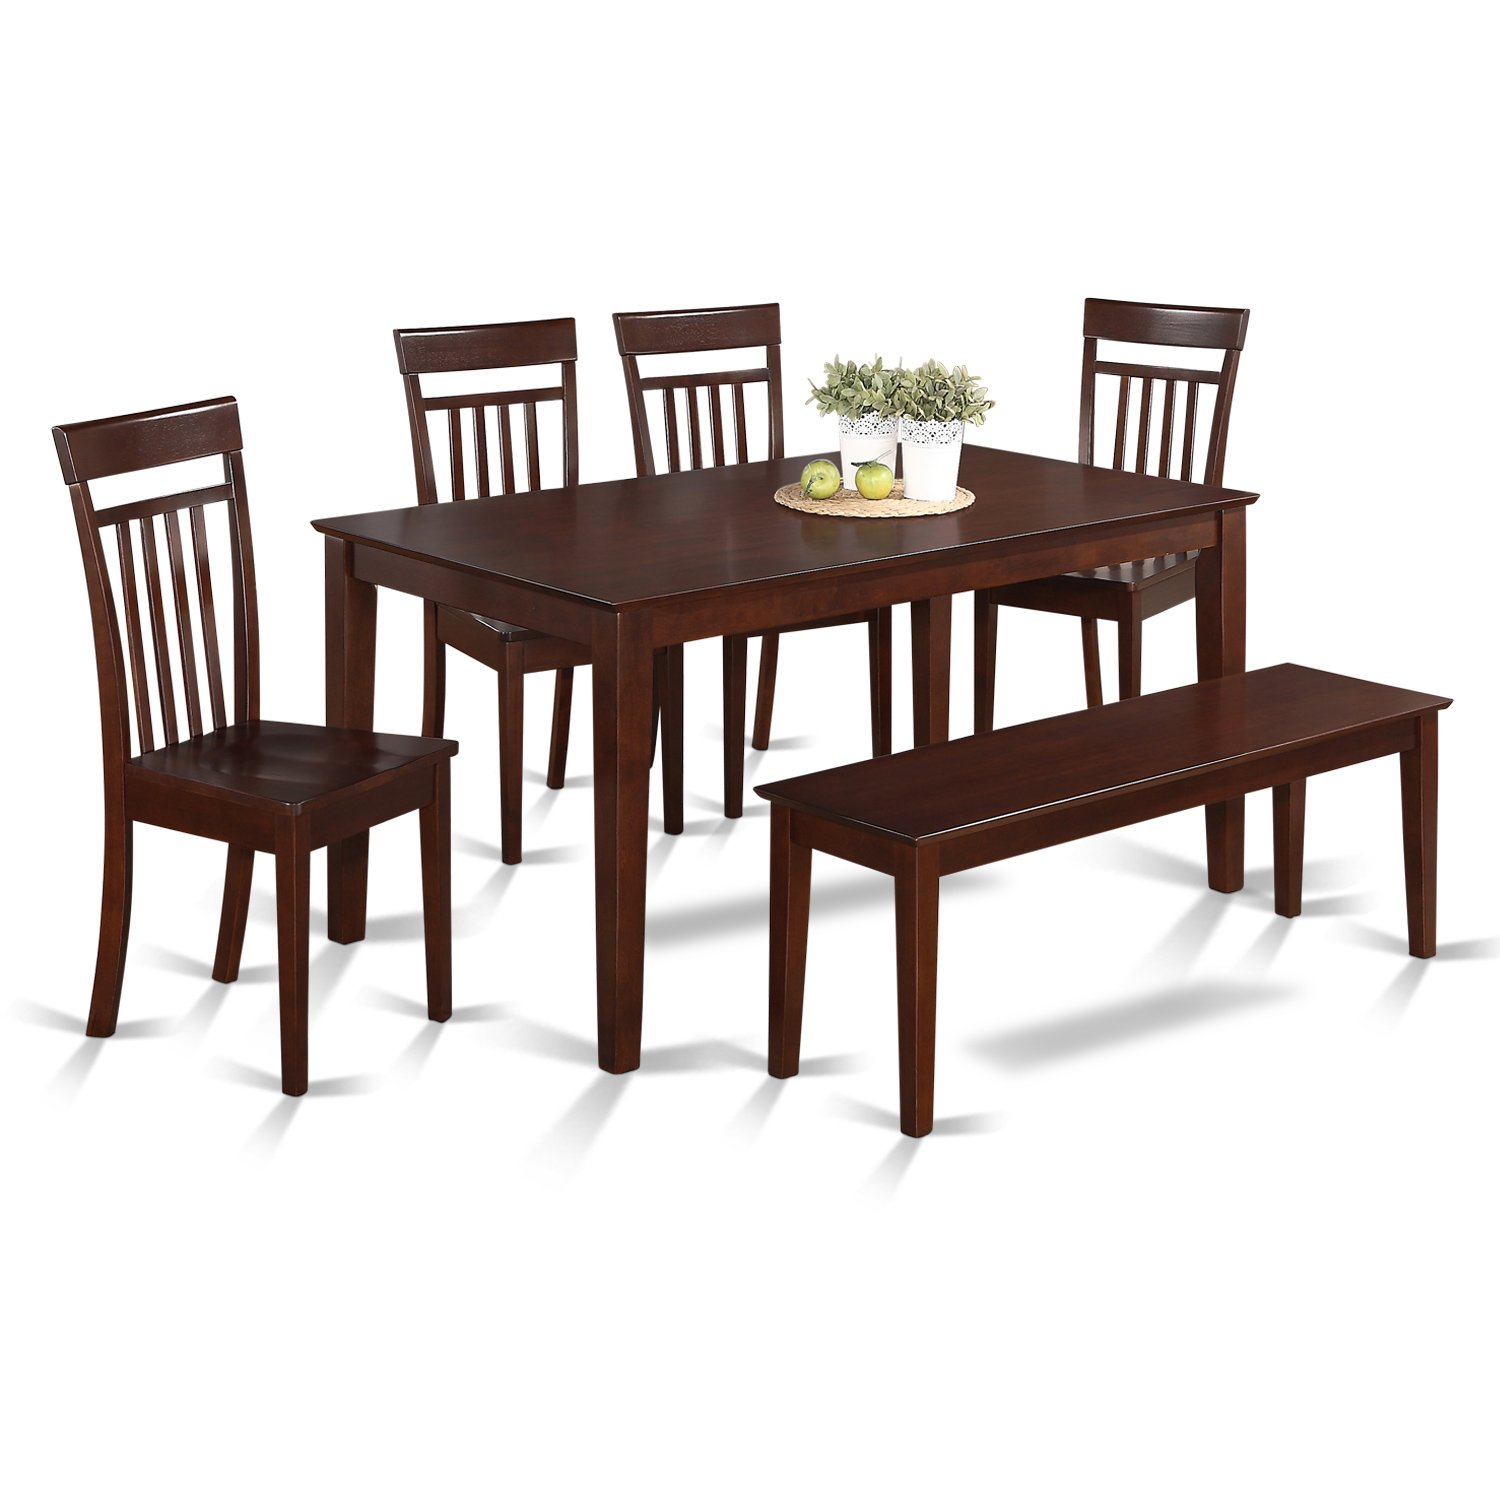 Amazon com east west furniture cap6s mah w 6 piece kitchen table set with bench wood seat mahogany finish kitchen dining